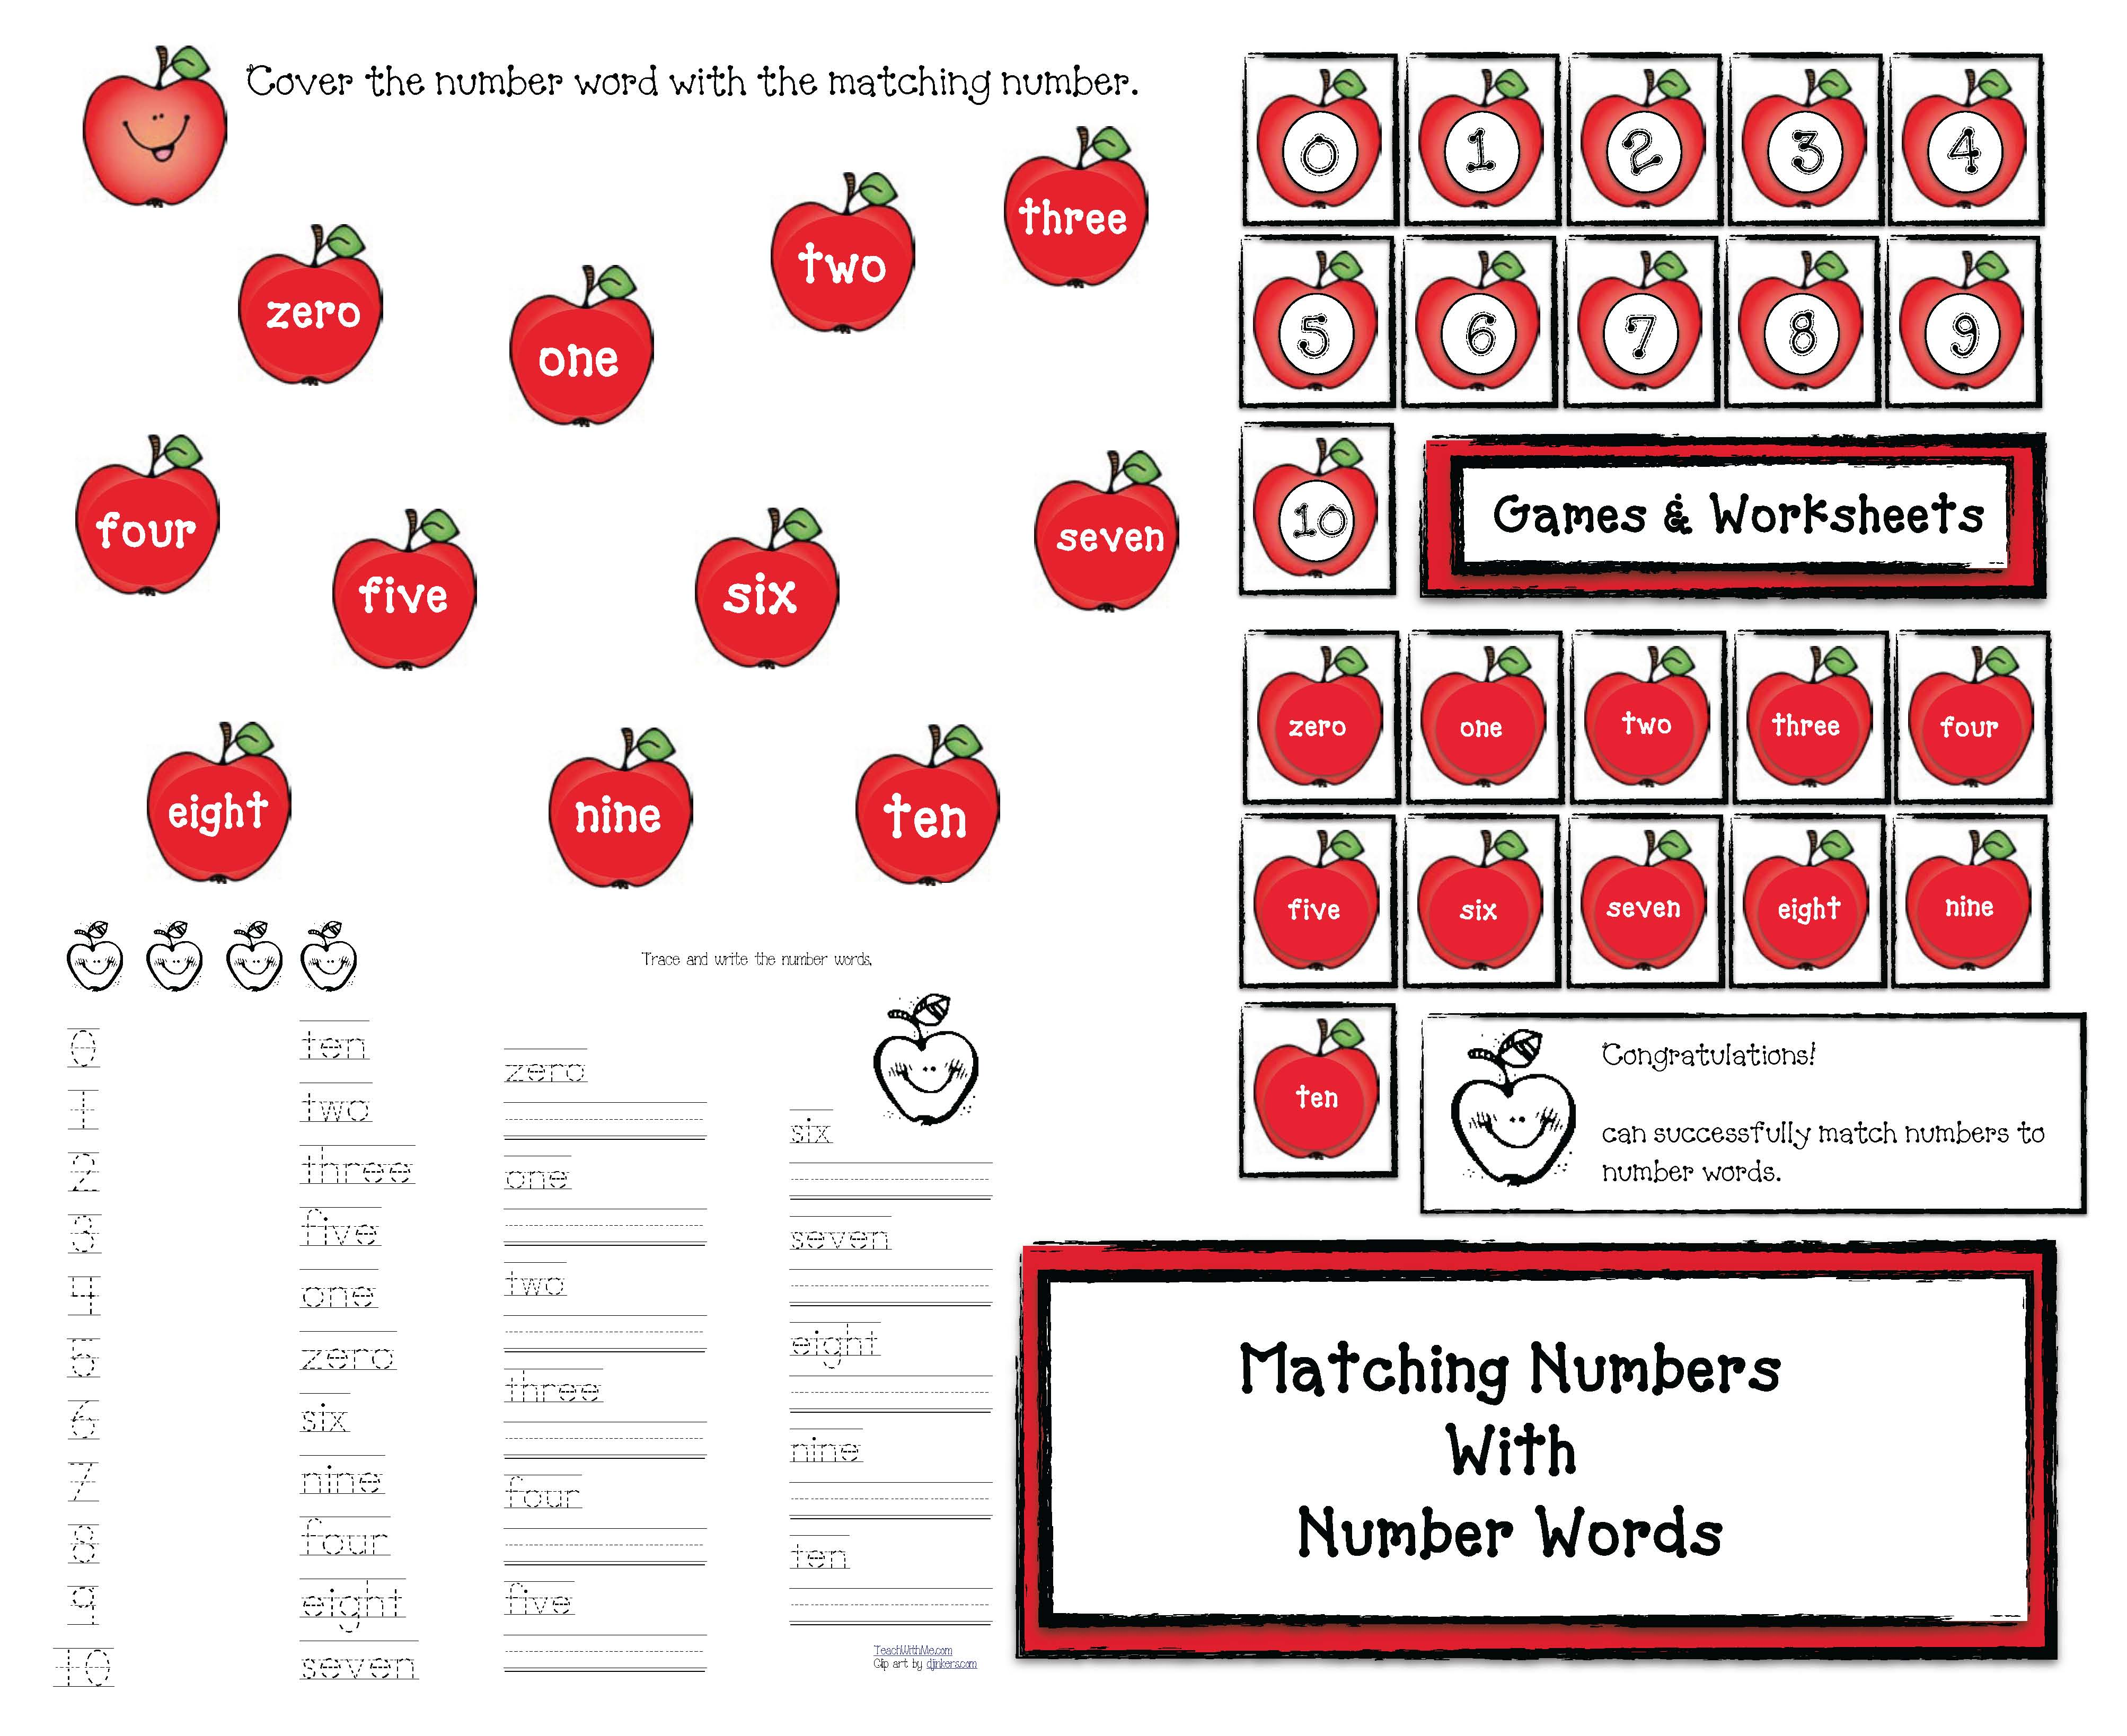 apple activities, number word matching, number games, apple games, apple crafts, alphabet games, alphabet assessment, alphabet activities, alphabet crafts, CCSS for K, CCSS for 1st